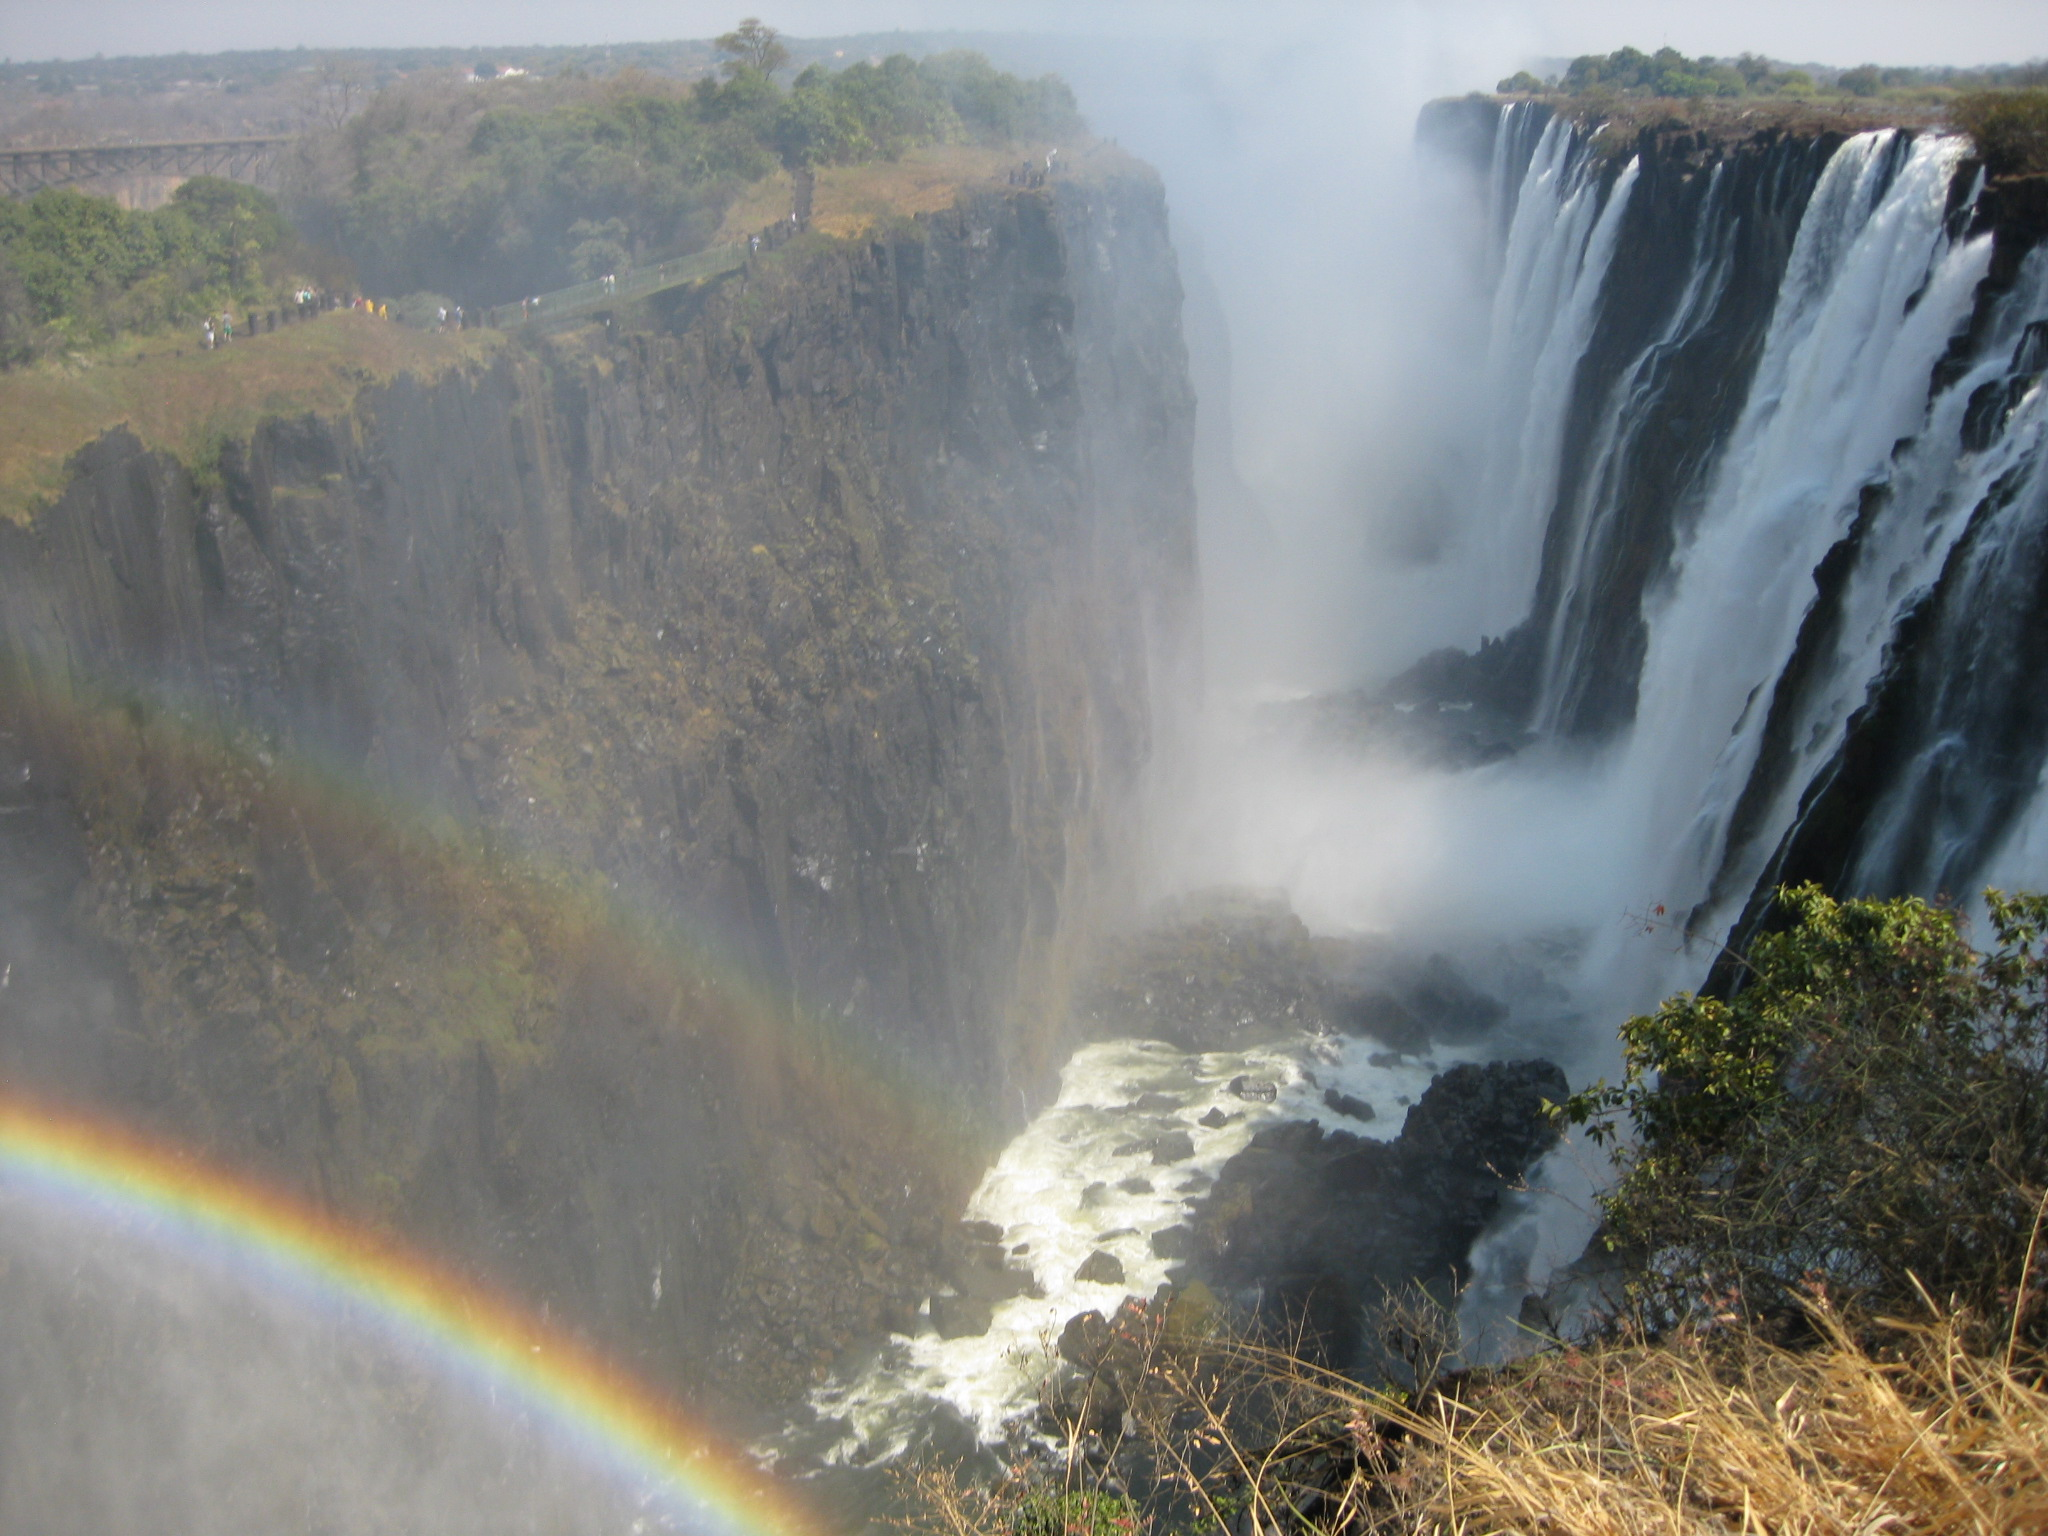 Lake kariba zambia photo credit mary fuller victoria falls in august publicscrutiny Images